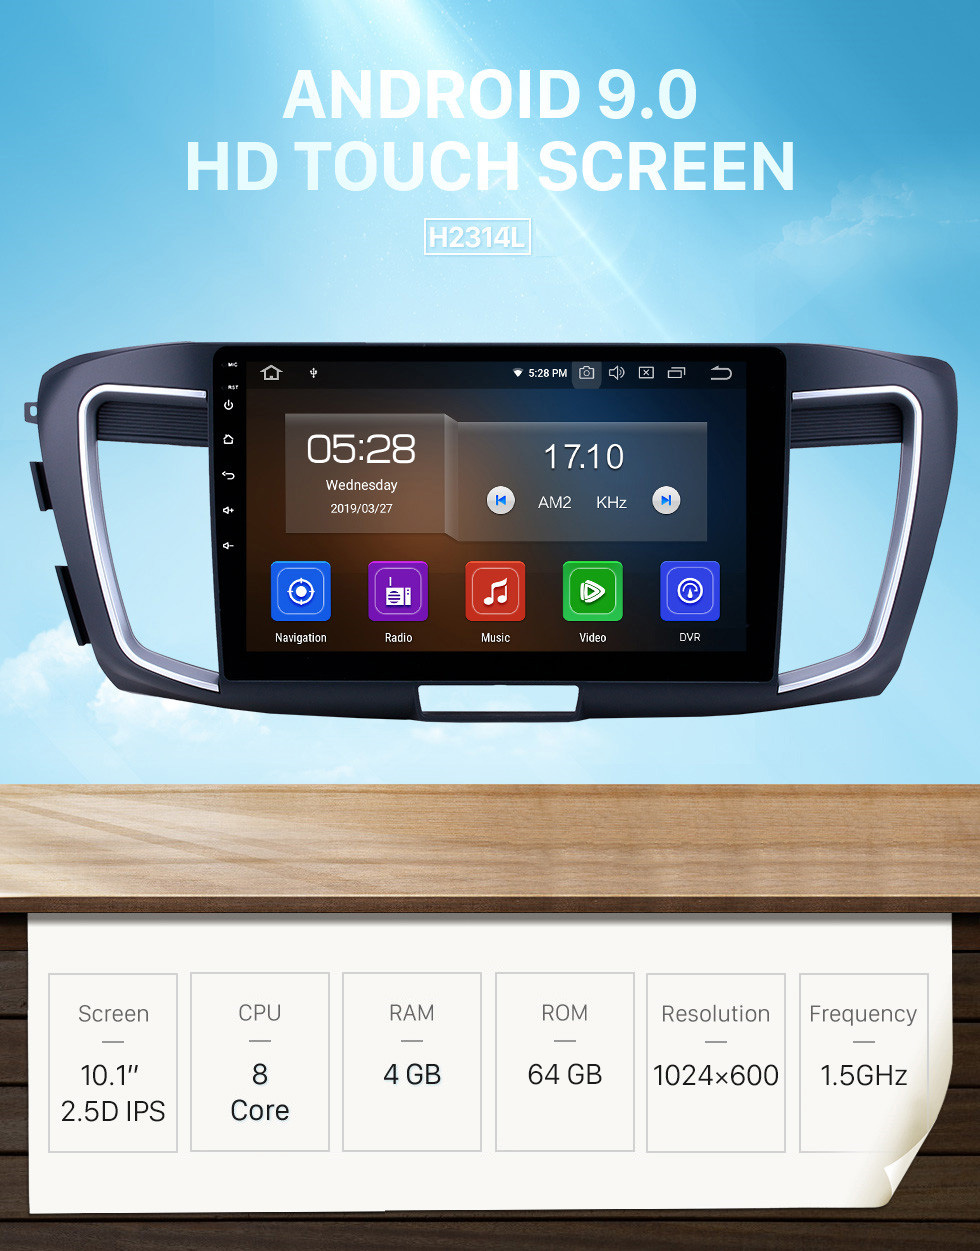 Seicane 10.1 inch Android 9.0 Radio for 2013 Honda Accord 9 Low Version Bluetooth Touchscreen GPS Navigation Carplay USB AUX support TPMS DAB+ SWC